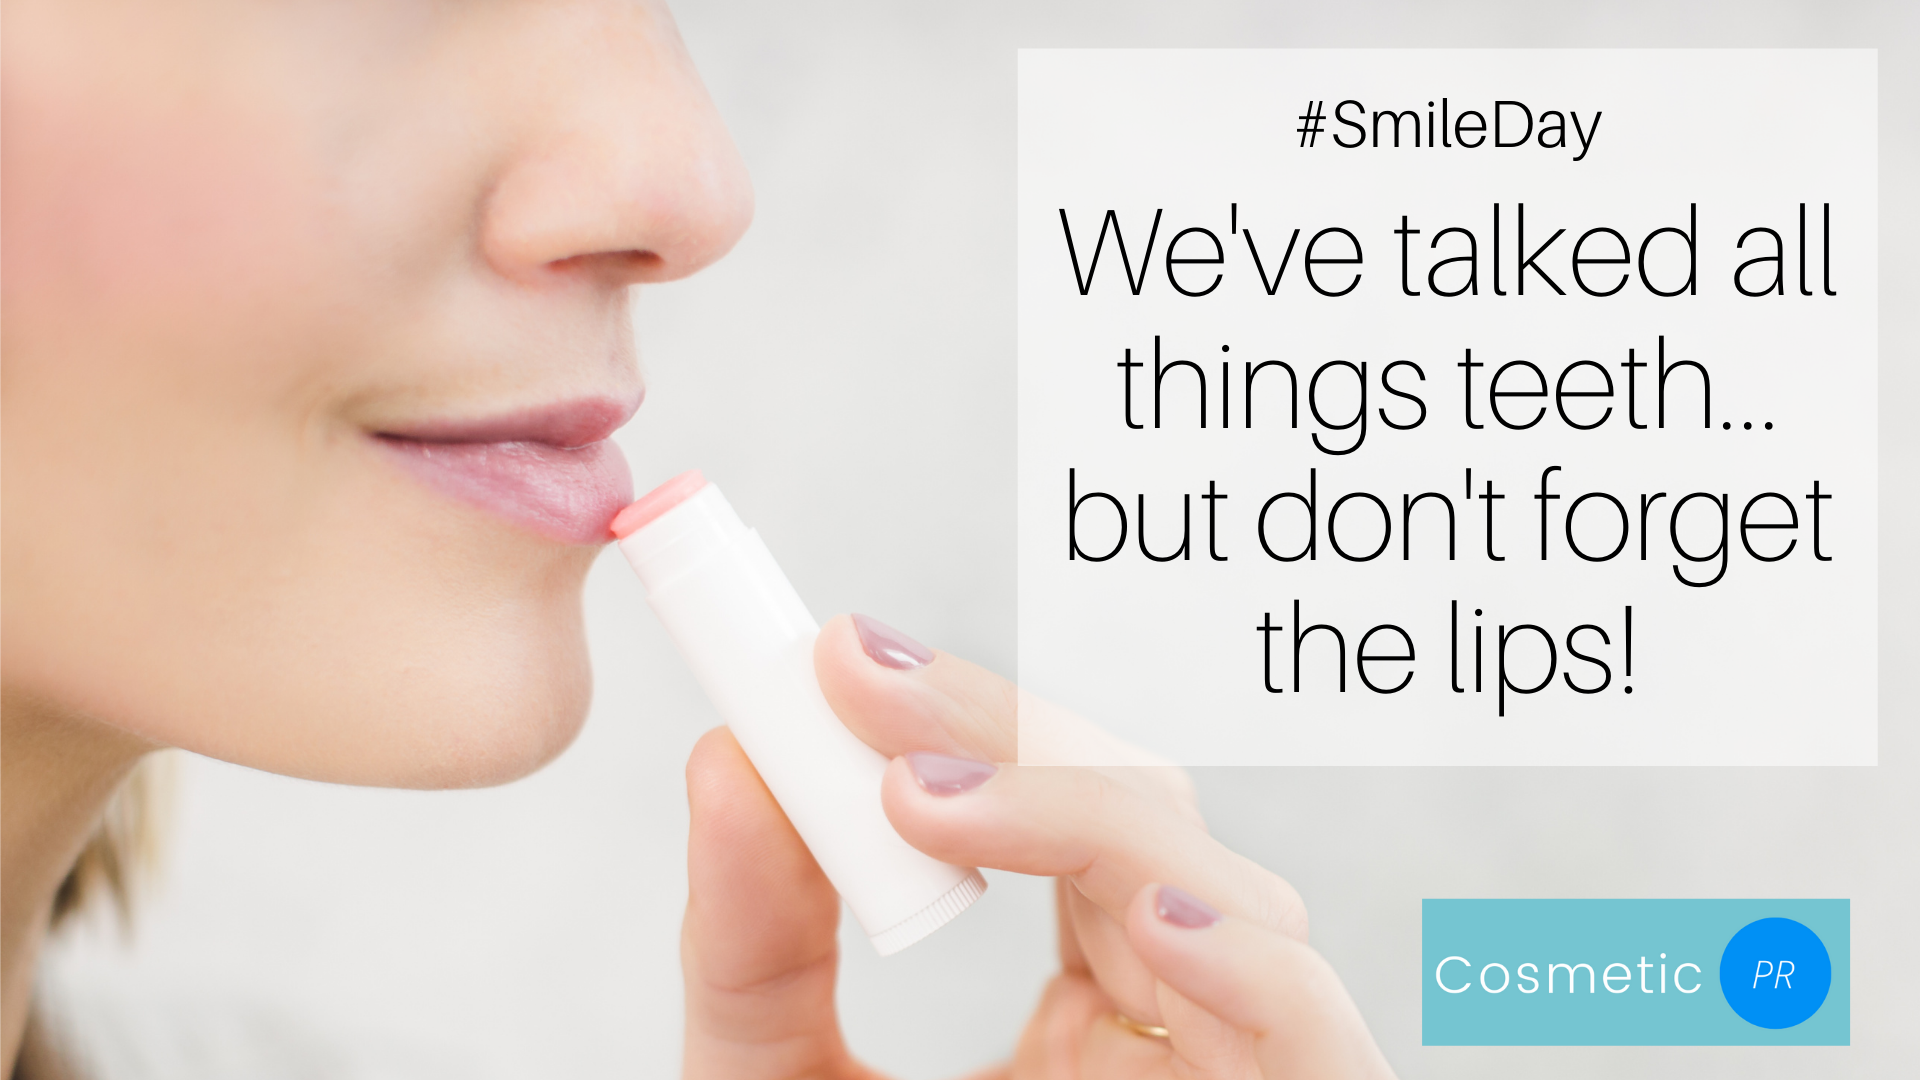 October 2nd is World Smile Day!